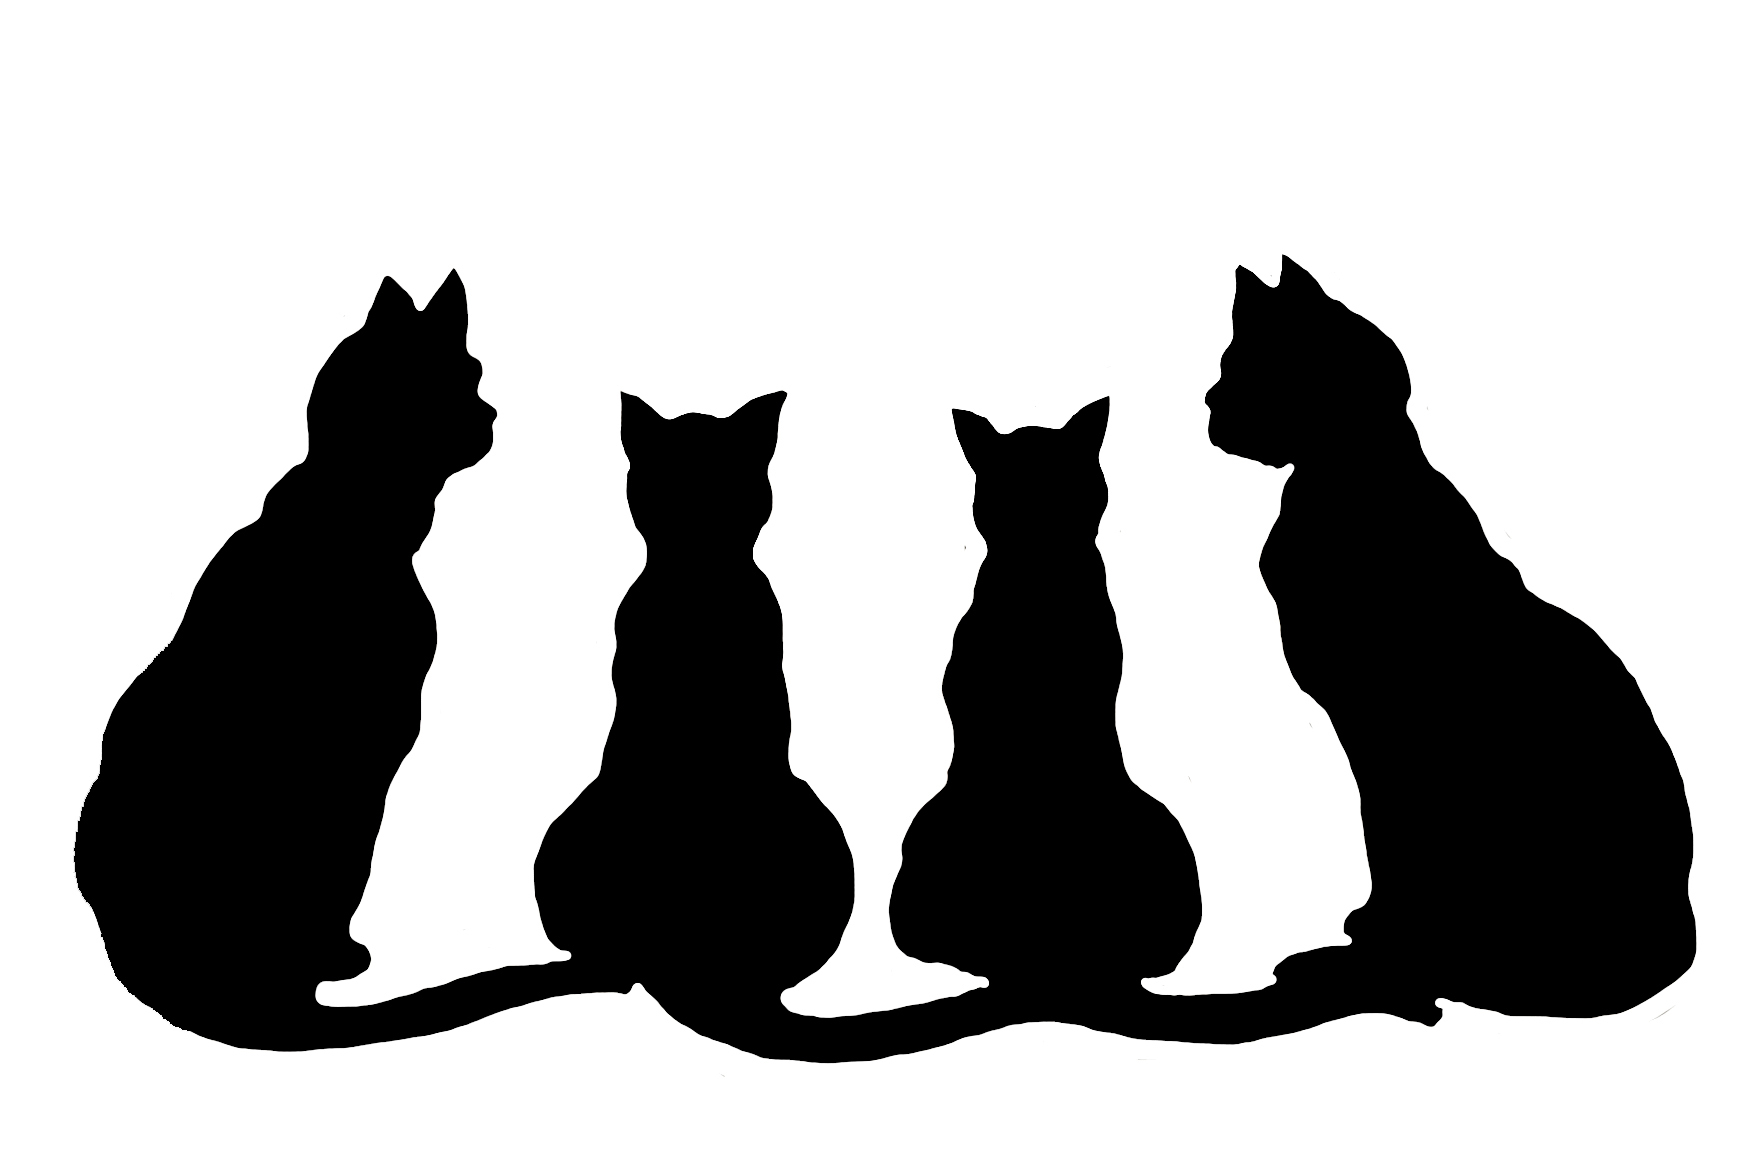 Silhouette Of Kitten Png Black Silhouette Of Cat Png Fat Black Cat